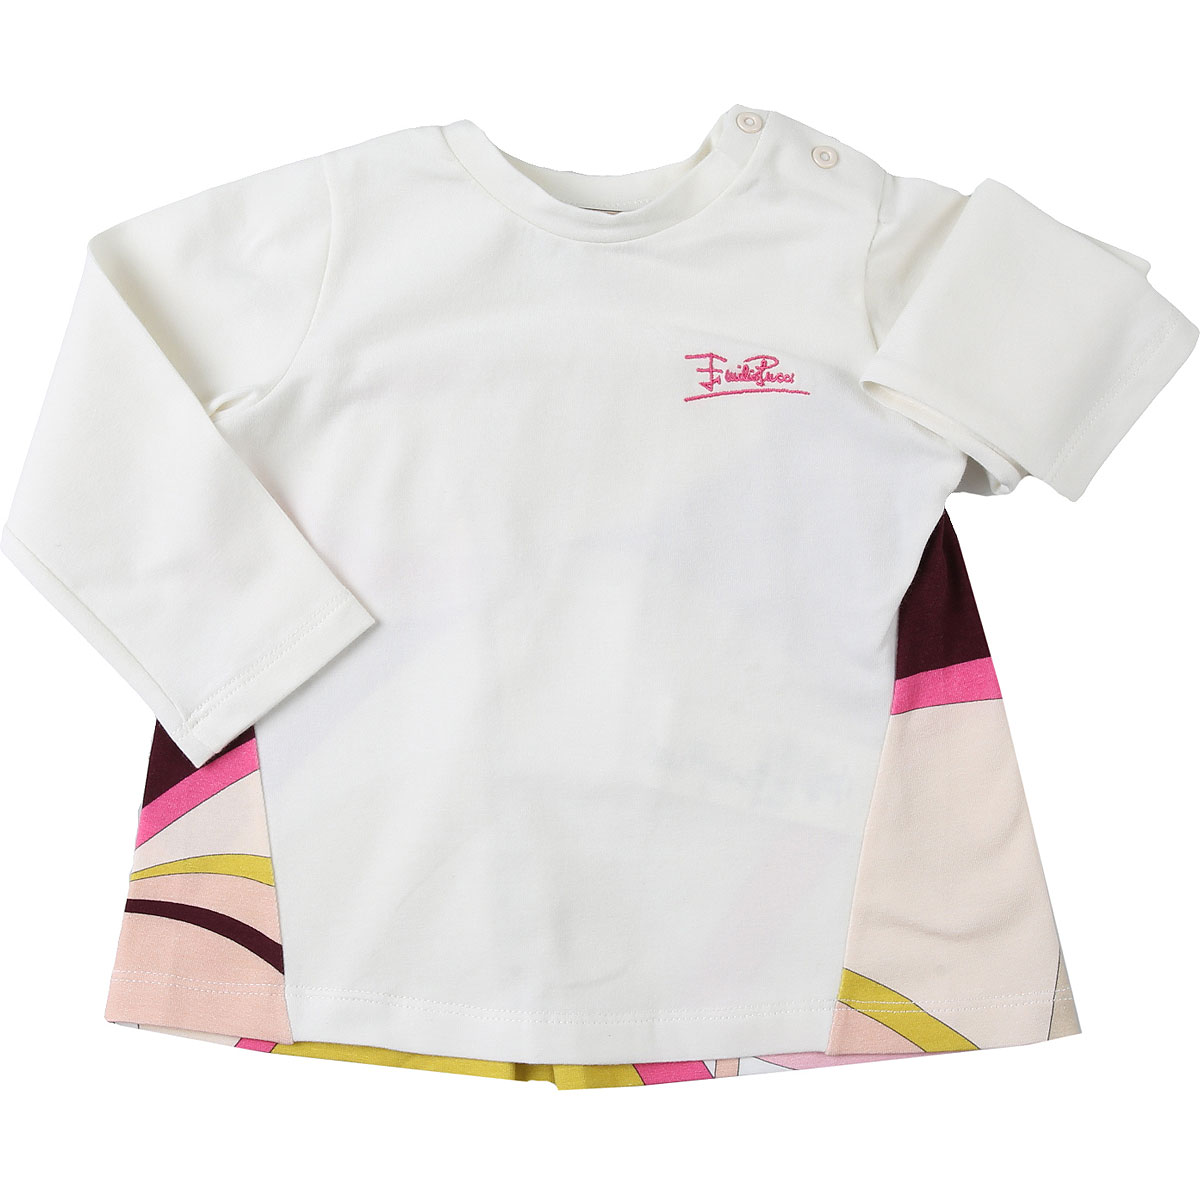 Emilio Pucci Baby T-Shirt for Girls On Sale, Cream, Cotton, 2019, 12M 18M 2Y